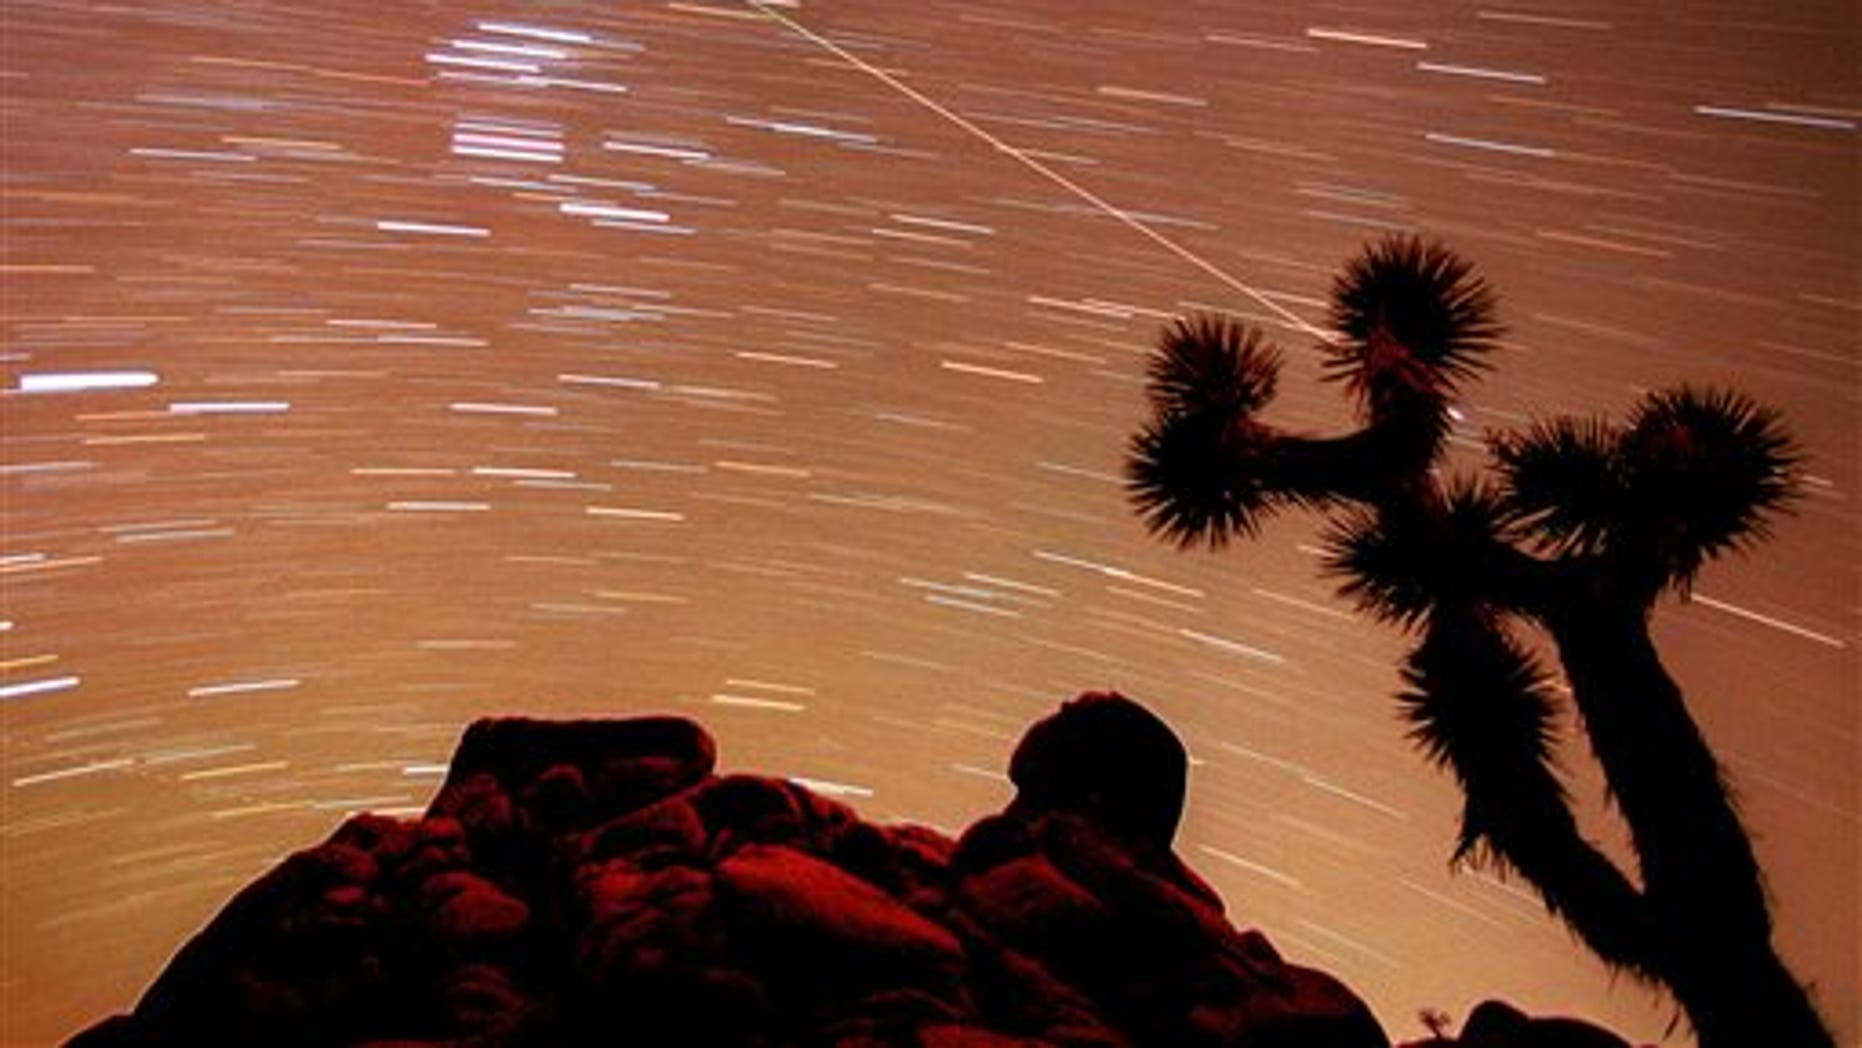 FILE - In this Nov. 17, 1998, file time exposure photo, a meteor streaks through the sky over Joshua trees and rocks at Joshua Tree National Monument in Southern California's Mojave Desert. President Barack Obama is granting national monument status to nearly 1.8 million acres of scenic California desert wilderness, including land that would connect what is now Joshua Tree National Park to other established national monuments and national parks in the area. Obama, in California this week for a fund-raising swing, plan to make the announcement Friday, Feb. 12, 2016. (AP Photo/Reed Saxon, File)